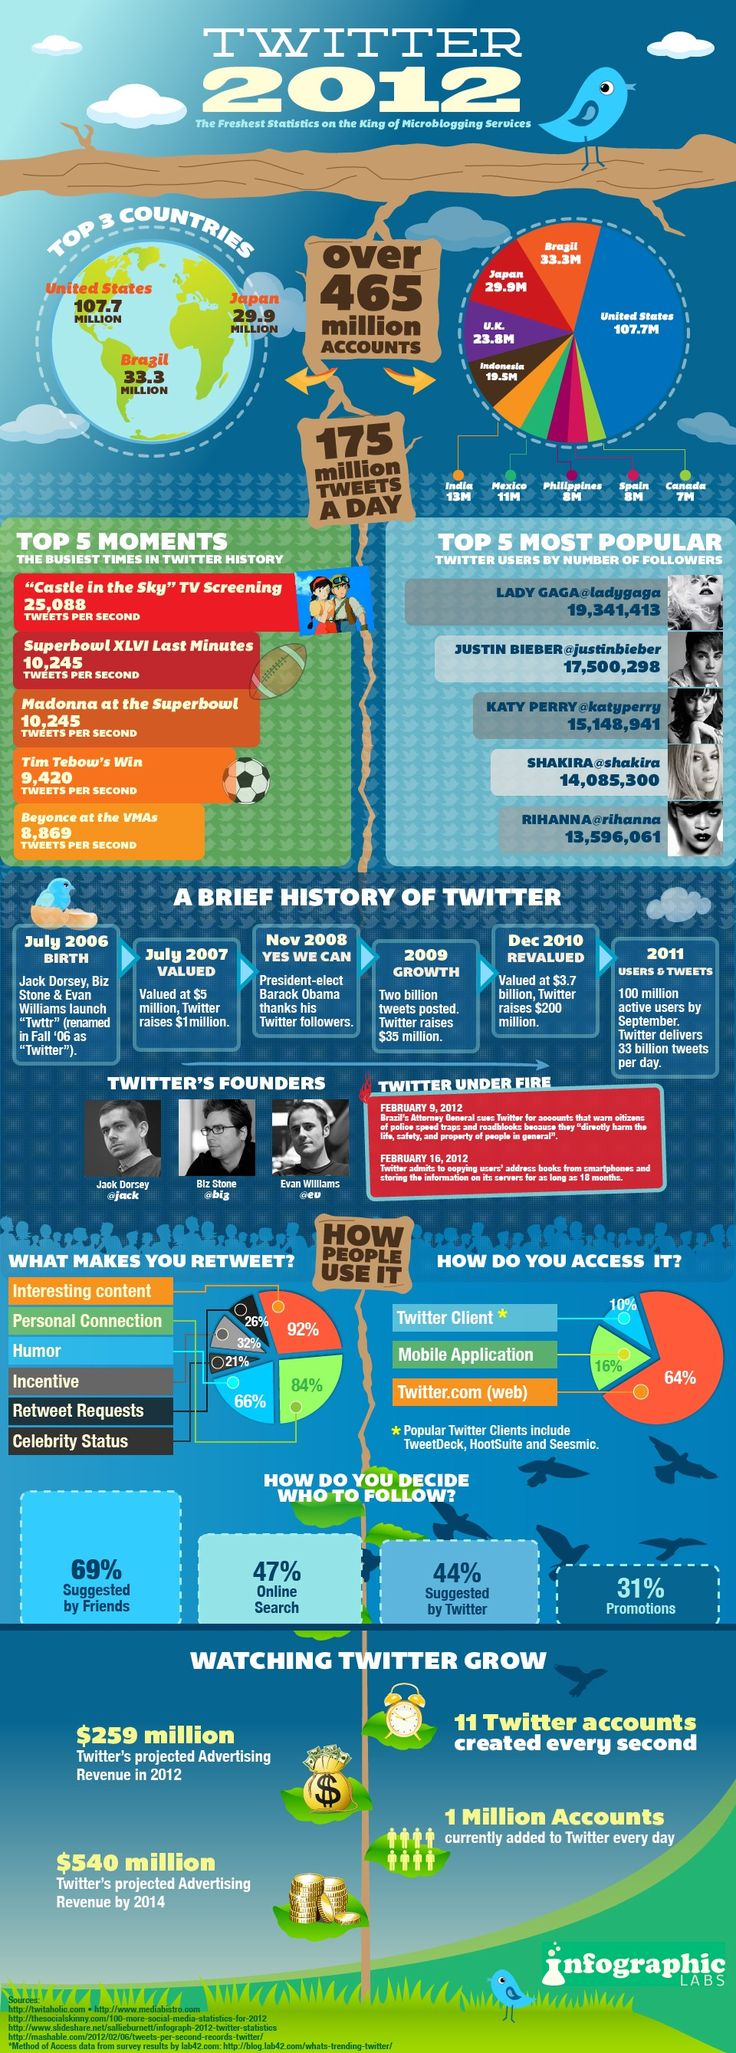 Just How Big Is Twitter In 2012? [INFOGRAPHIC]: Twitter2012, Twitter Stat, Social Media, 2012 Infographic, Twitter Infographic, Media Infographic, De Twitter, Socialmedia, Twitter 2012